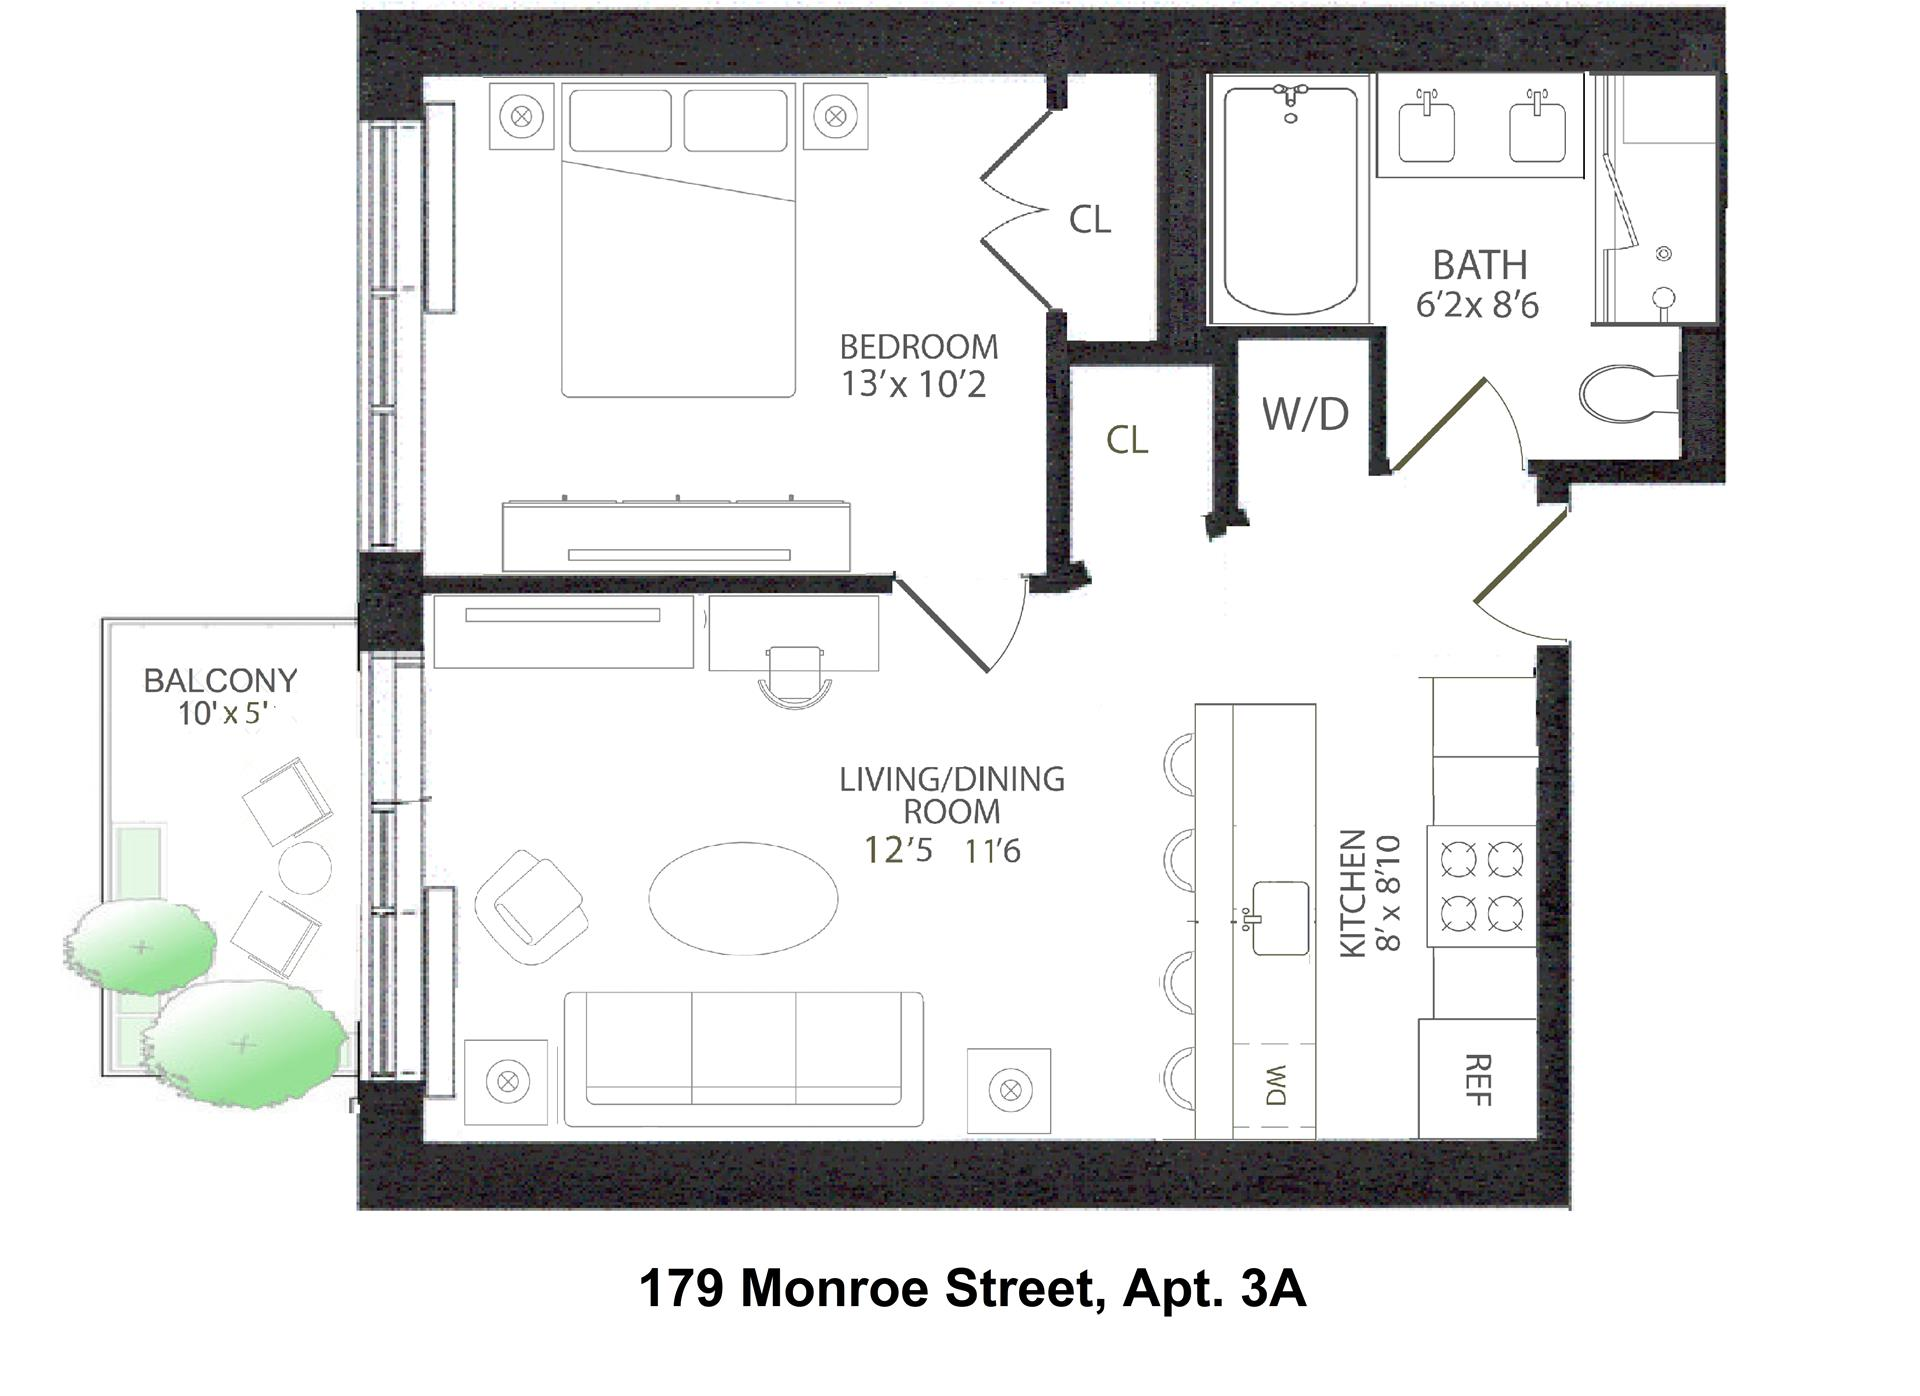 Floor plan of 179 Monroe St, 3A - Bedford - Stuyvesant, New York